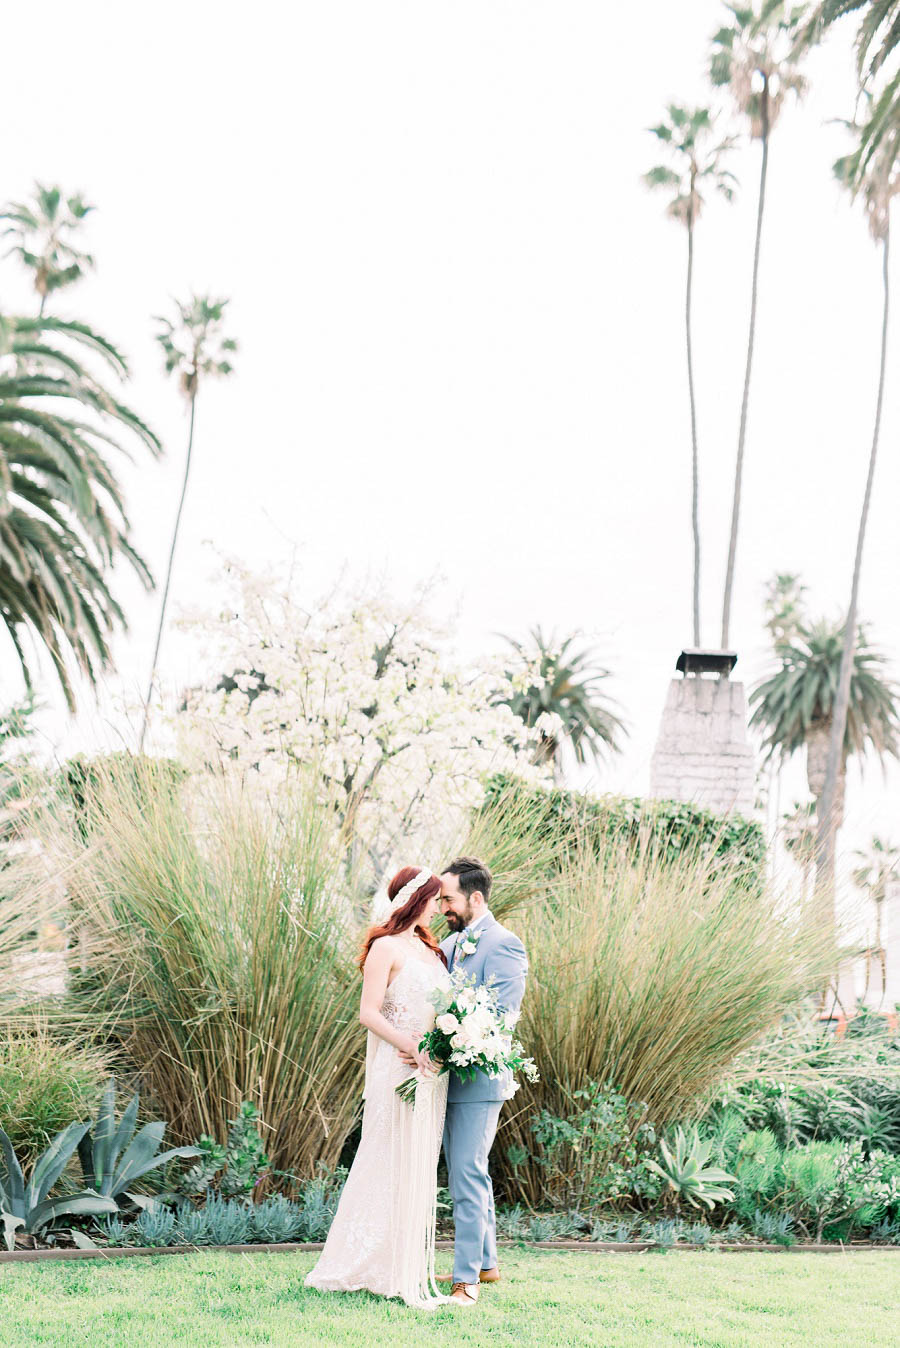 San Juan Capistrano Wedding - California Wedding Photographer - Myra Roman Photography-22.jpg